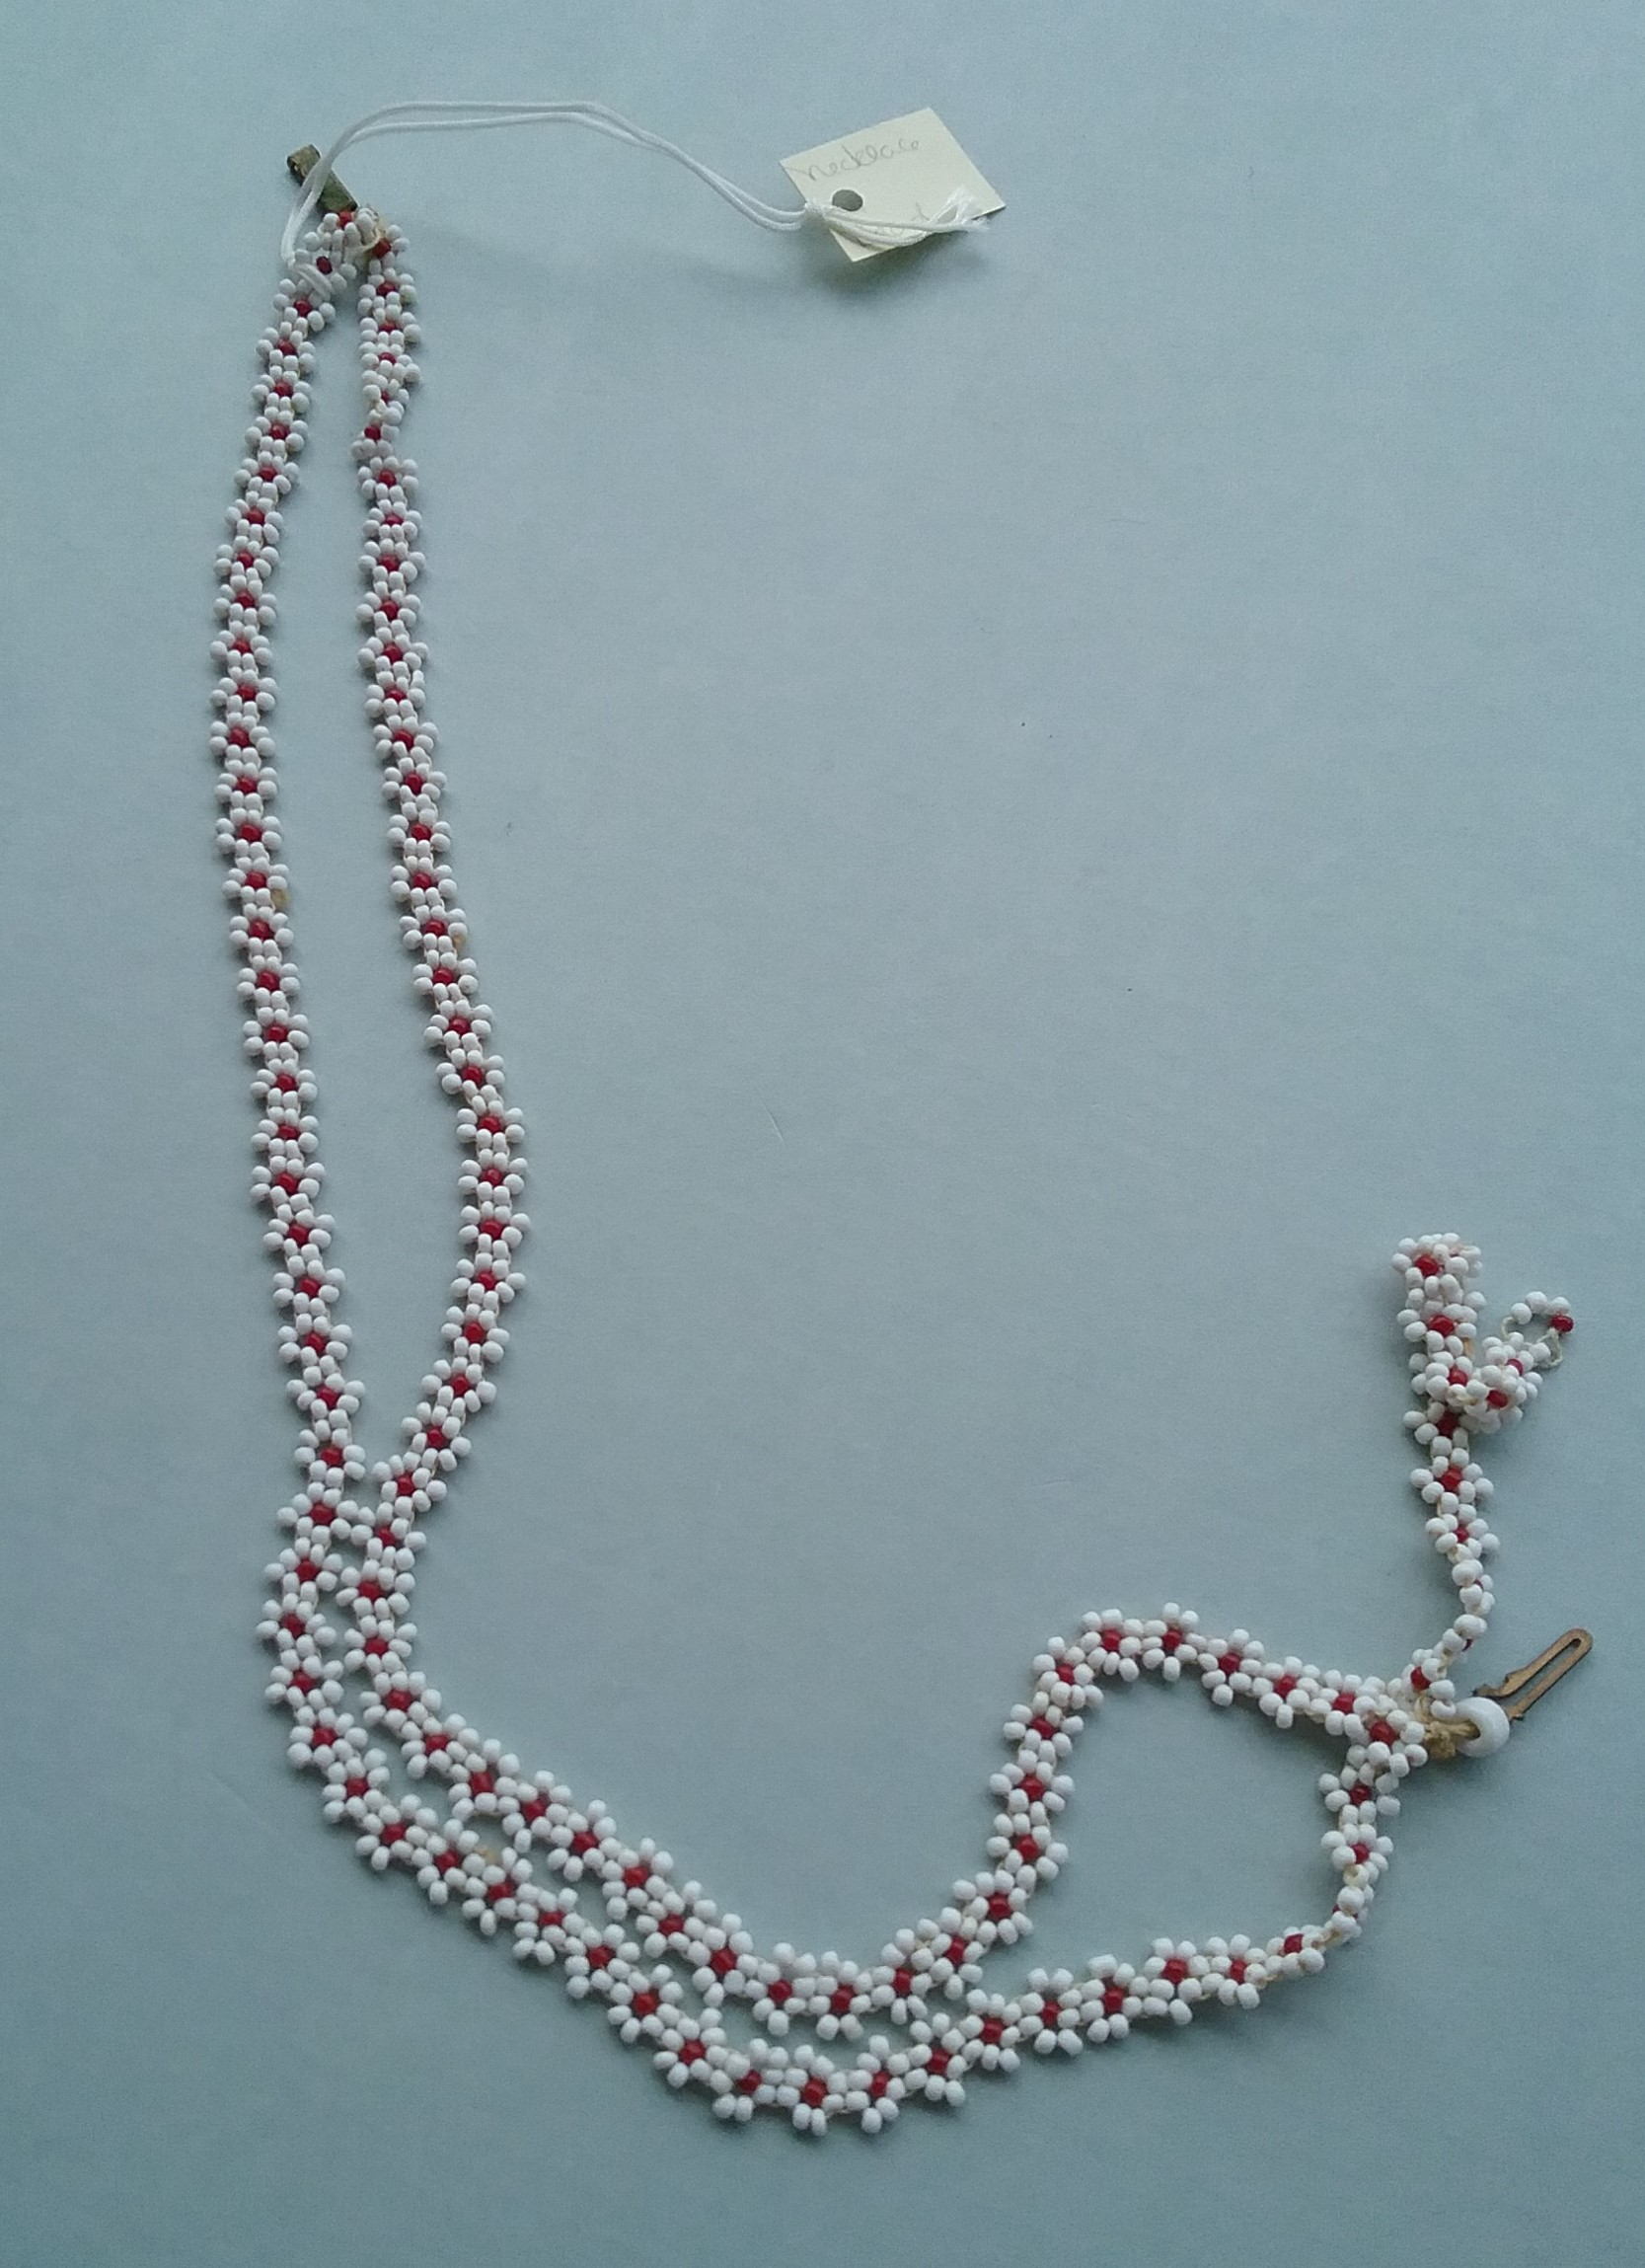 Seed Bead Necklace: This necklace features red and white seed beads. Donated by Doris Anderson. MCHS collections, #2004.87.1.